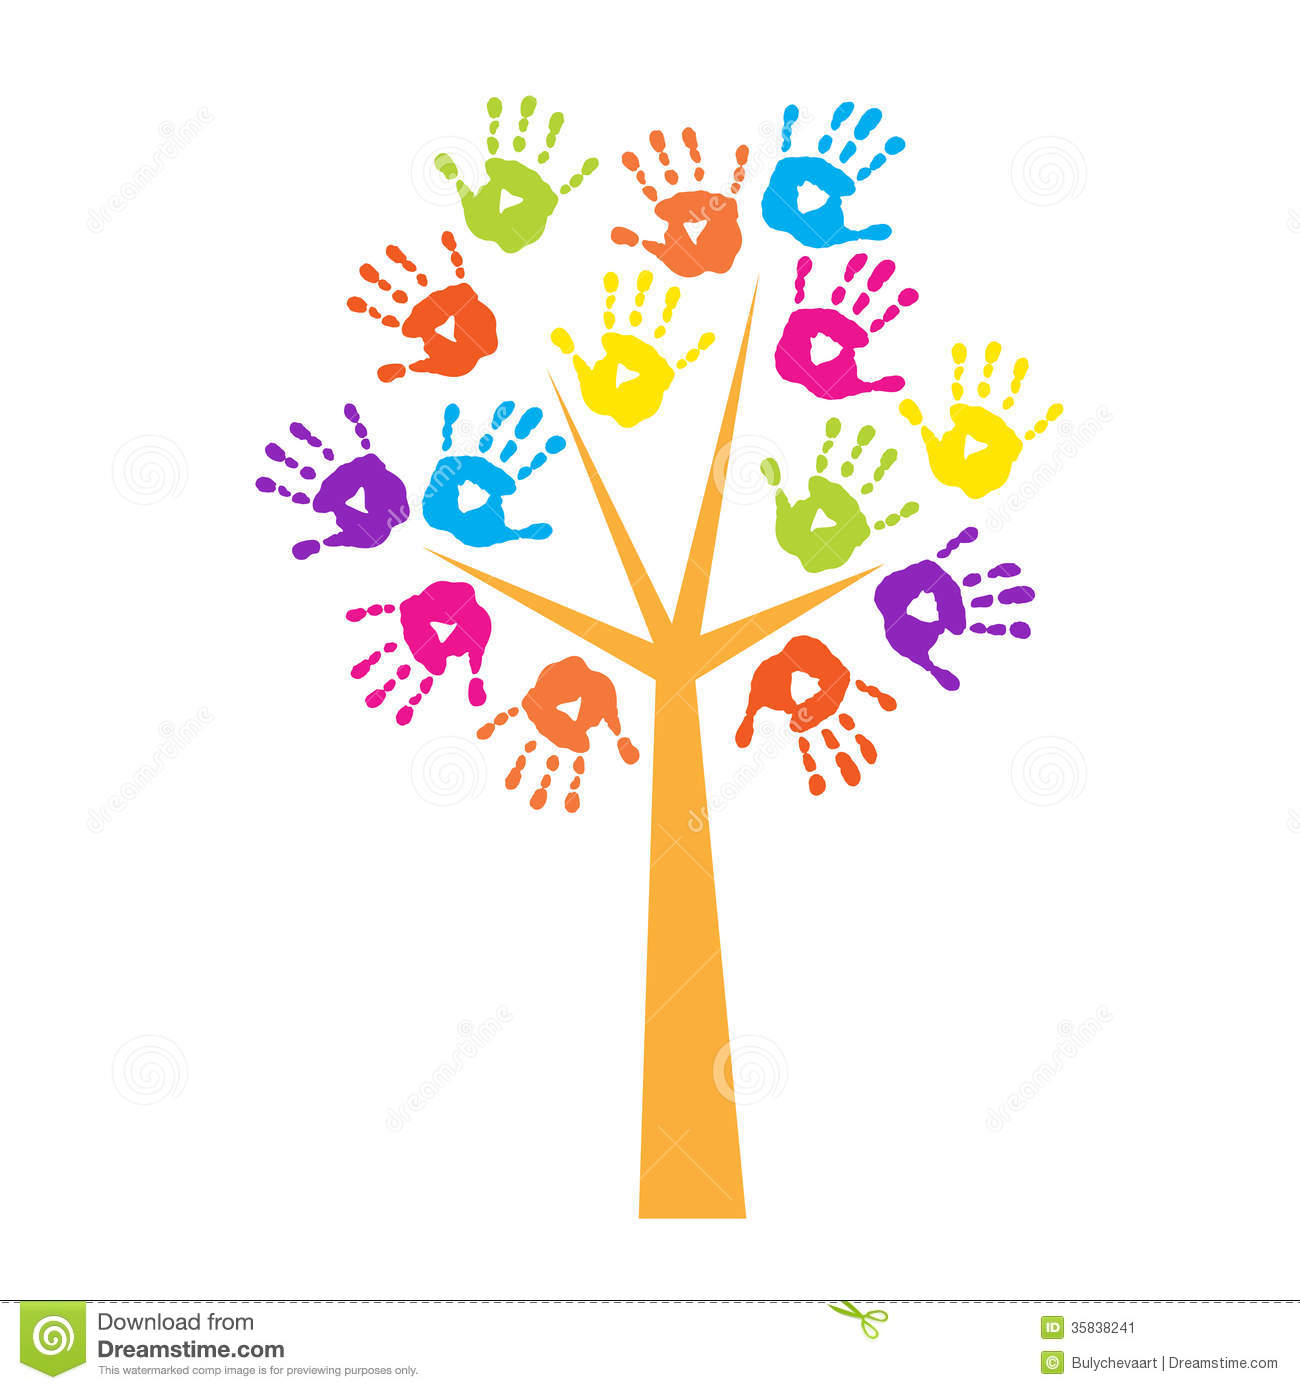 Tree With Handprints Instead Of Leaves Stock Image - Image: 35838241